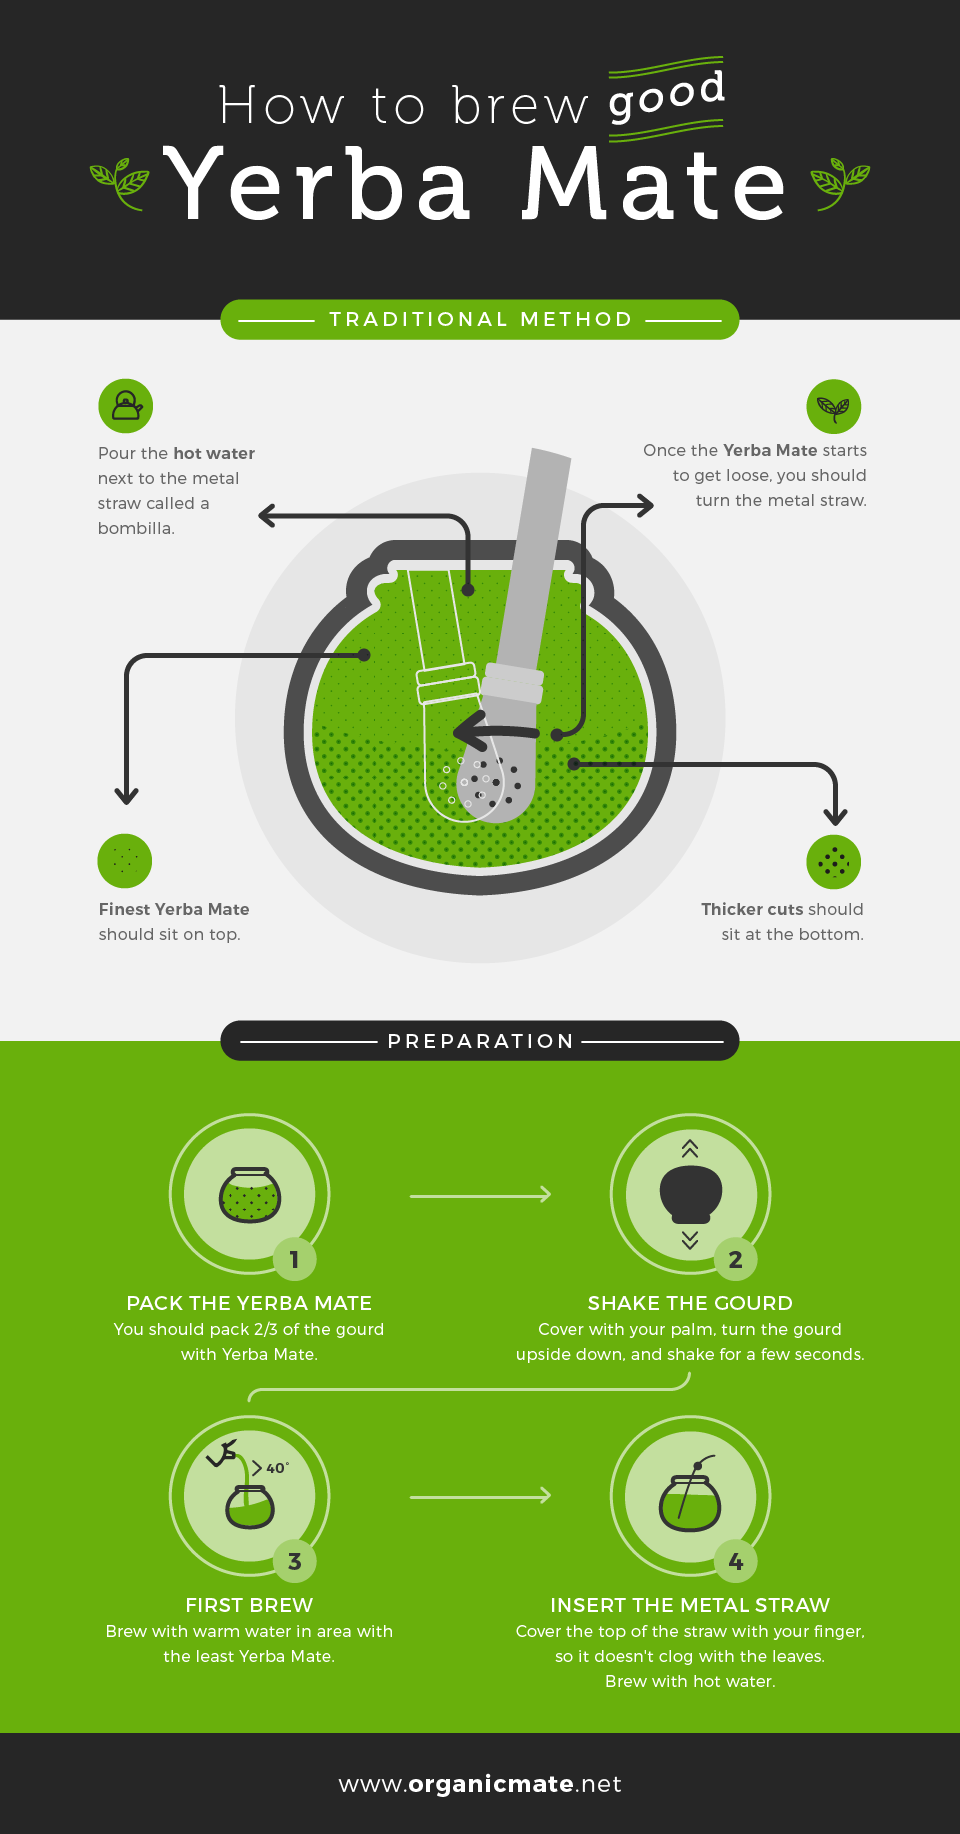 How to prepare Yerba mate Traditionally - Organic Mate Infographic